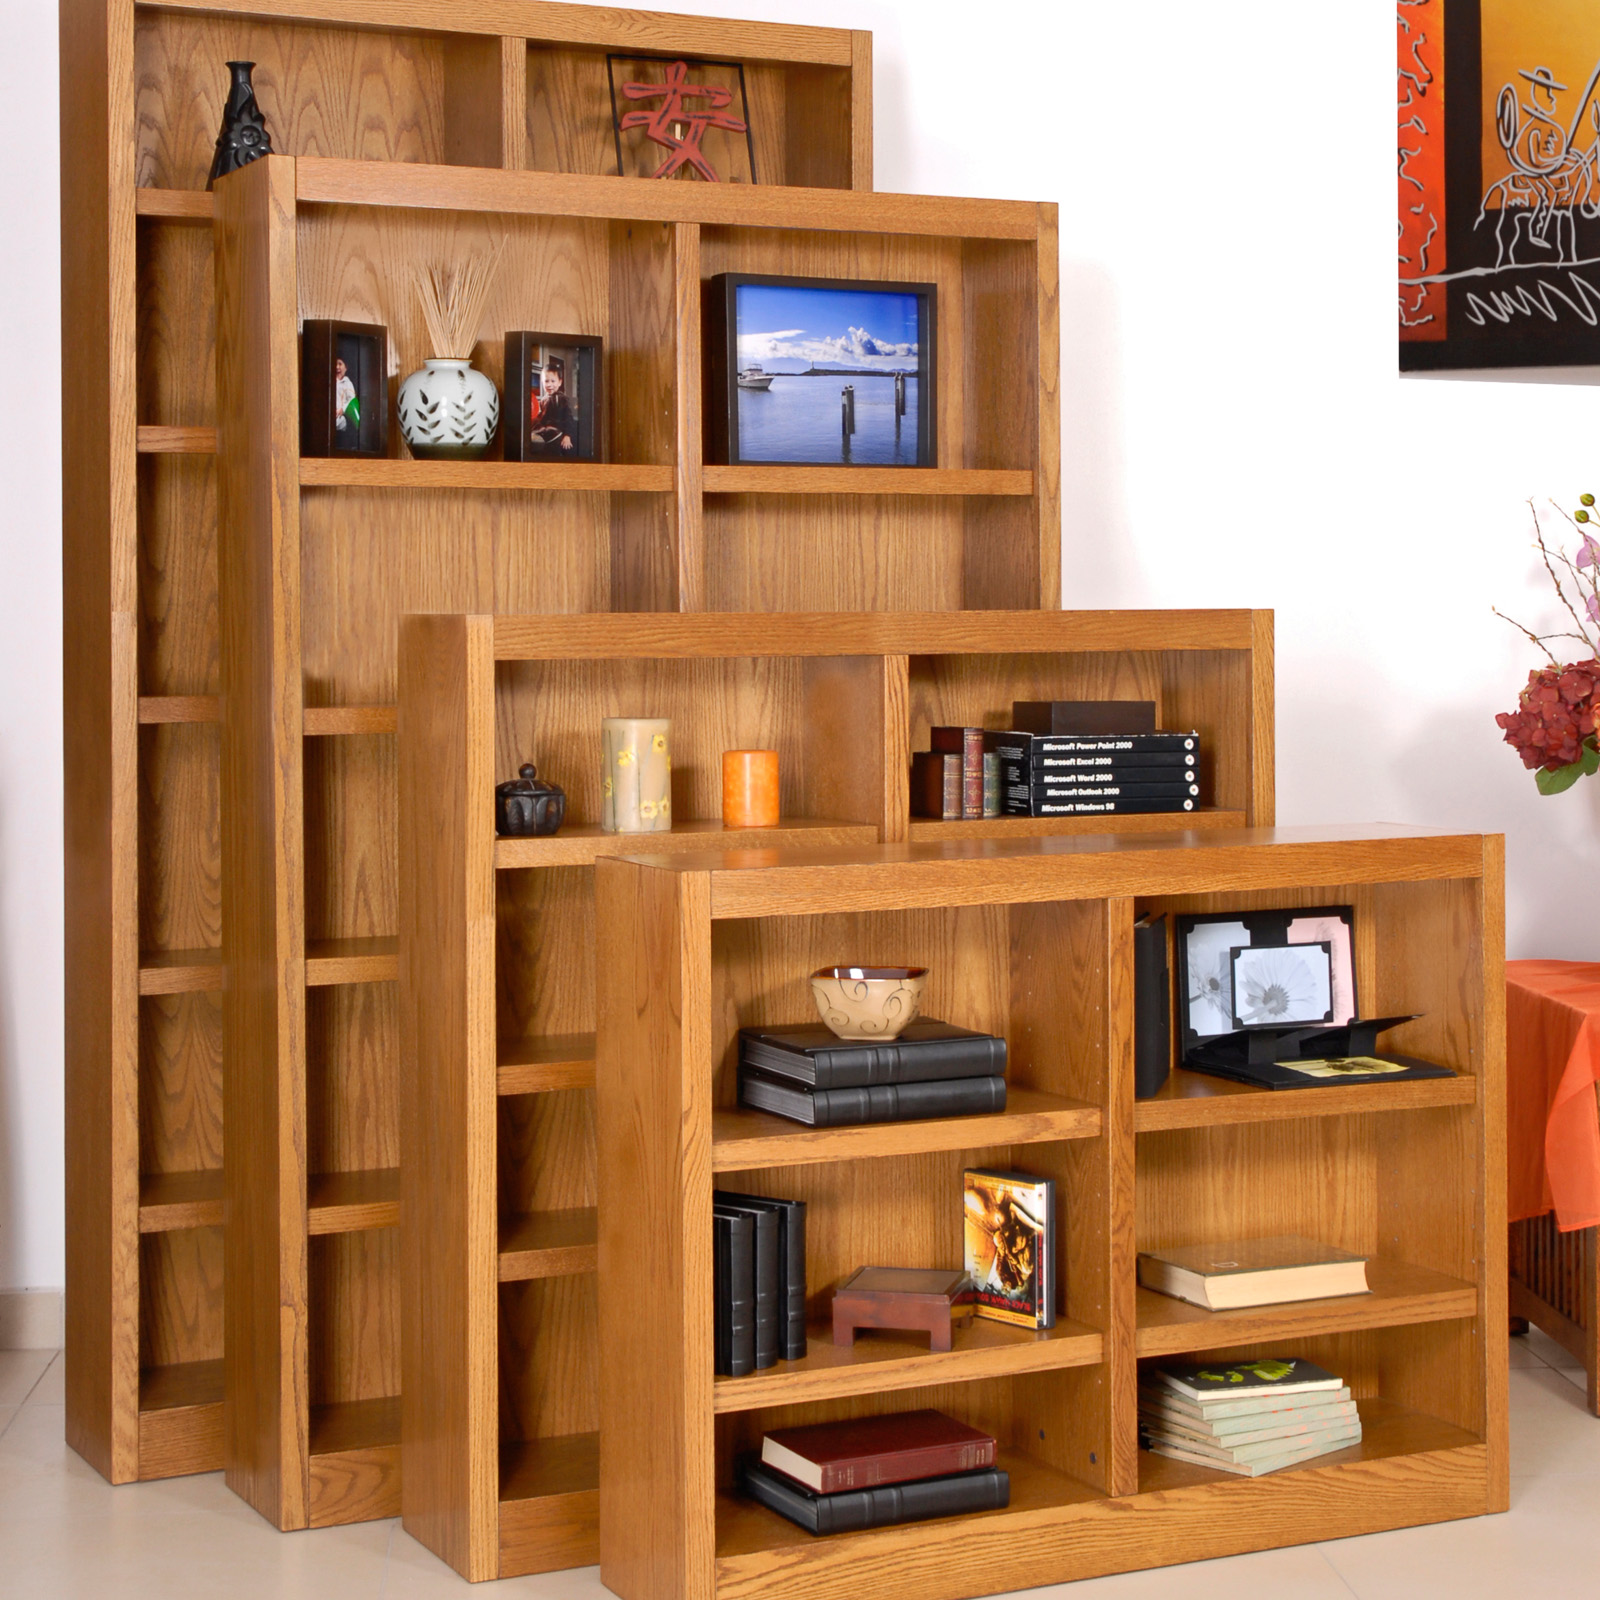 Concepts in wood double wide veneer bookcase red